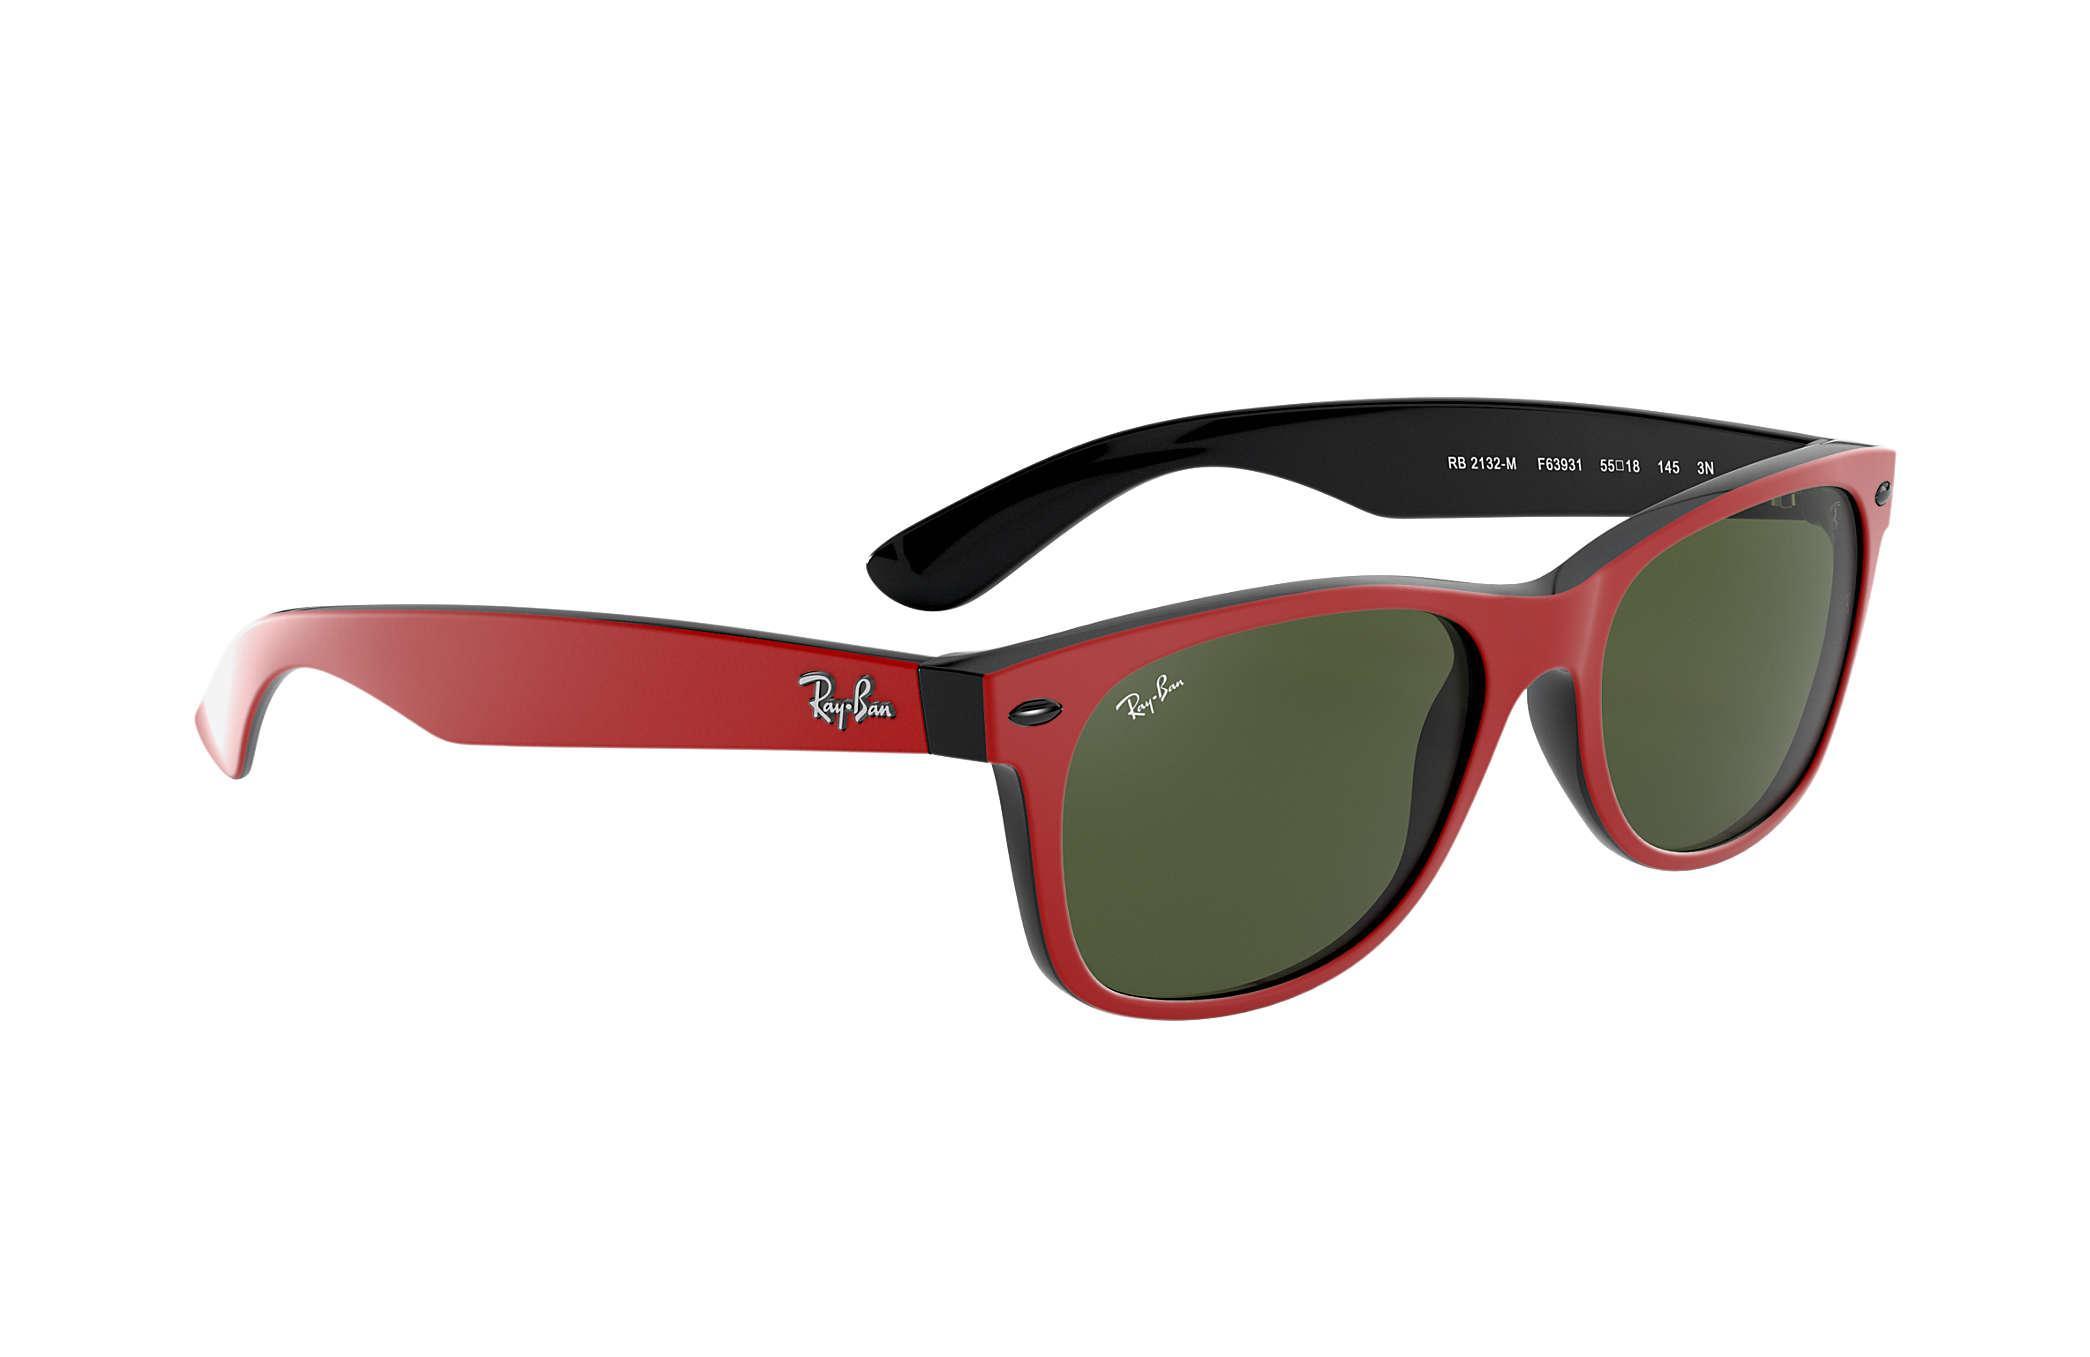 Ray Ban Ferrari Red Shop Clothing Shoes Online